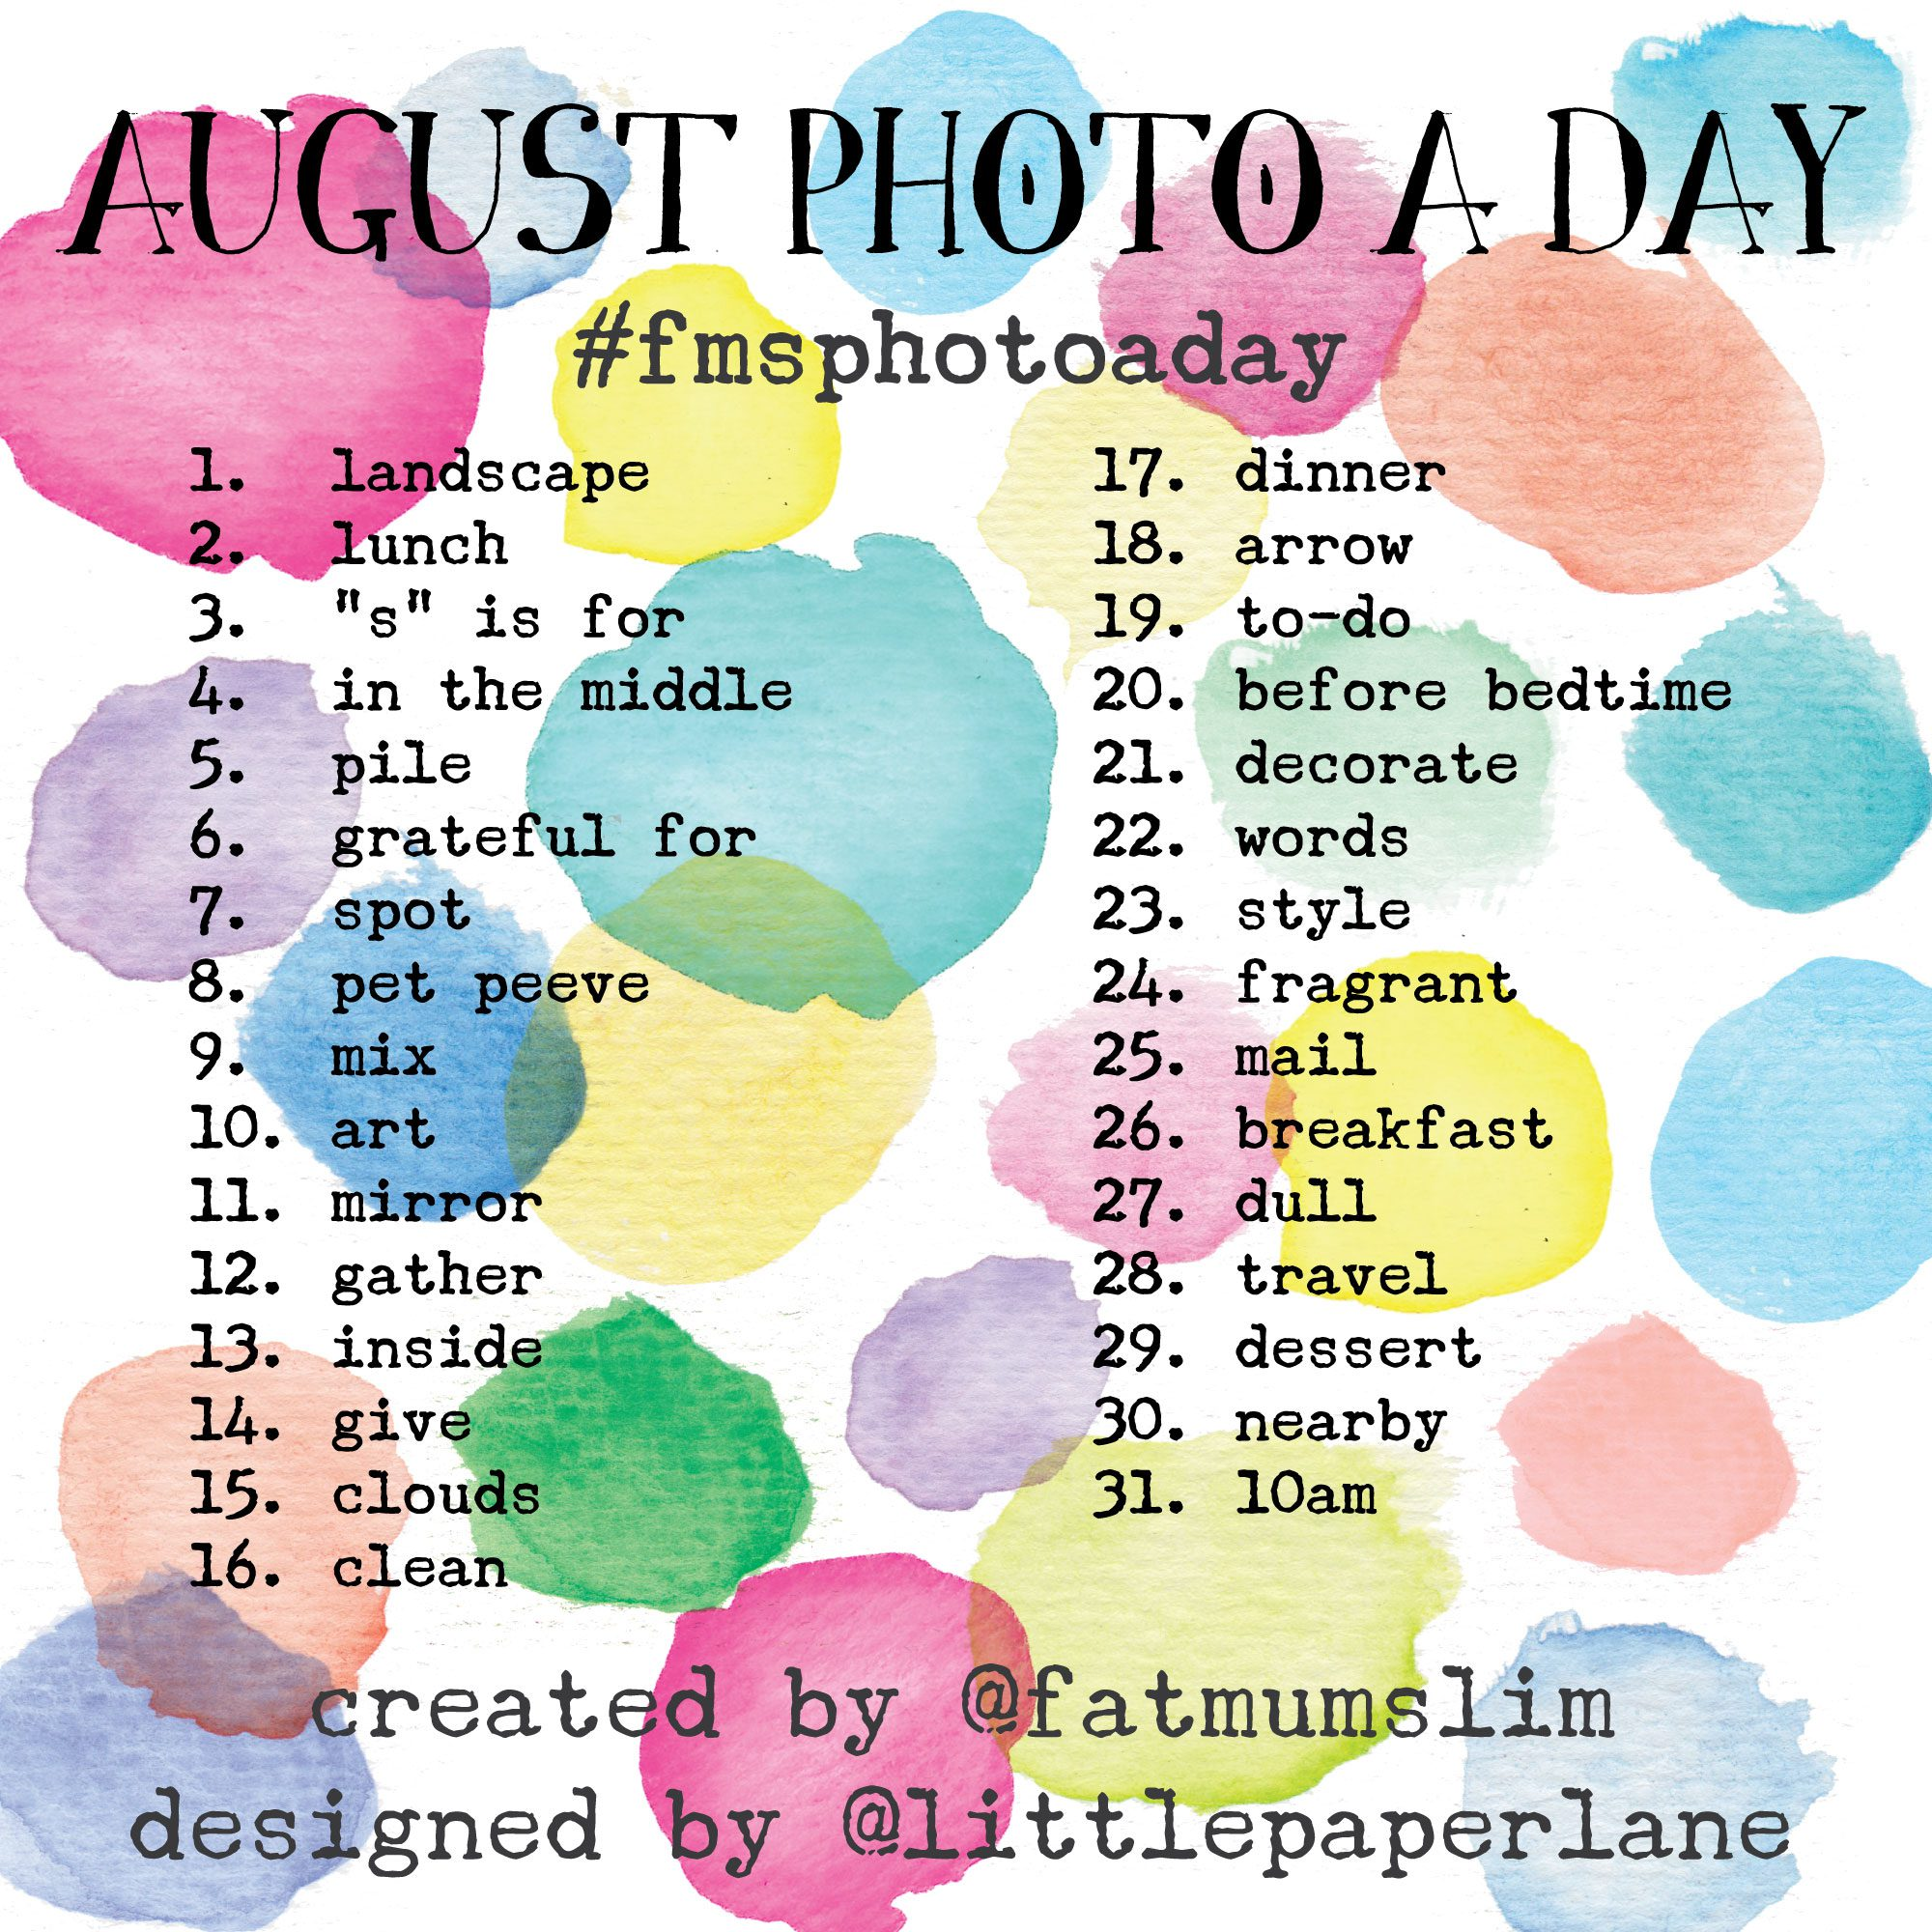 PHOTO A DAY AUGUST